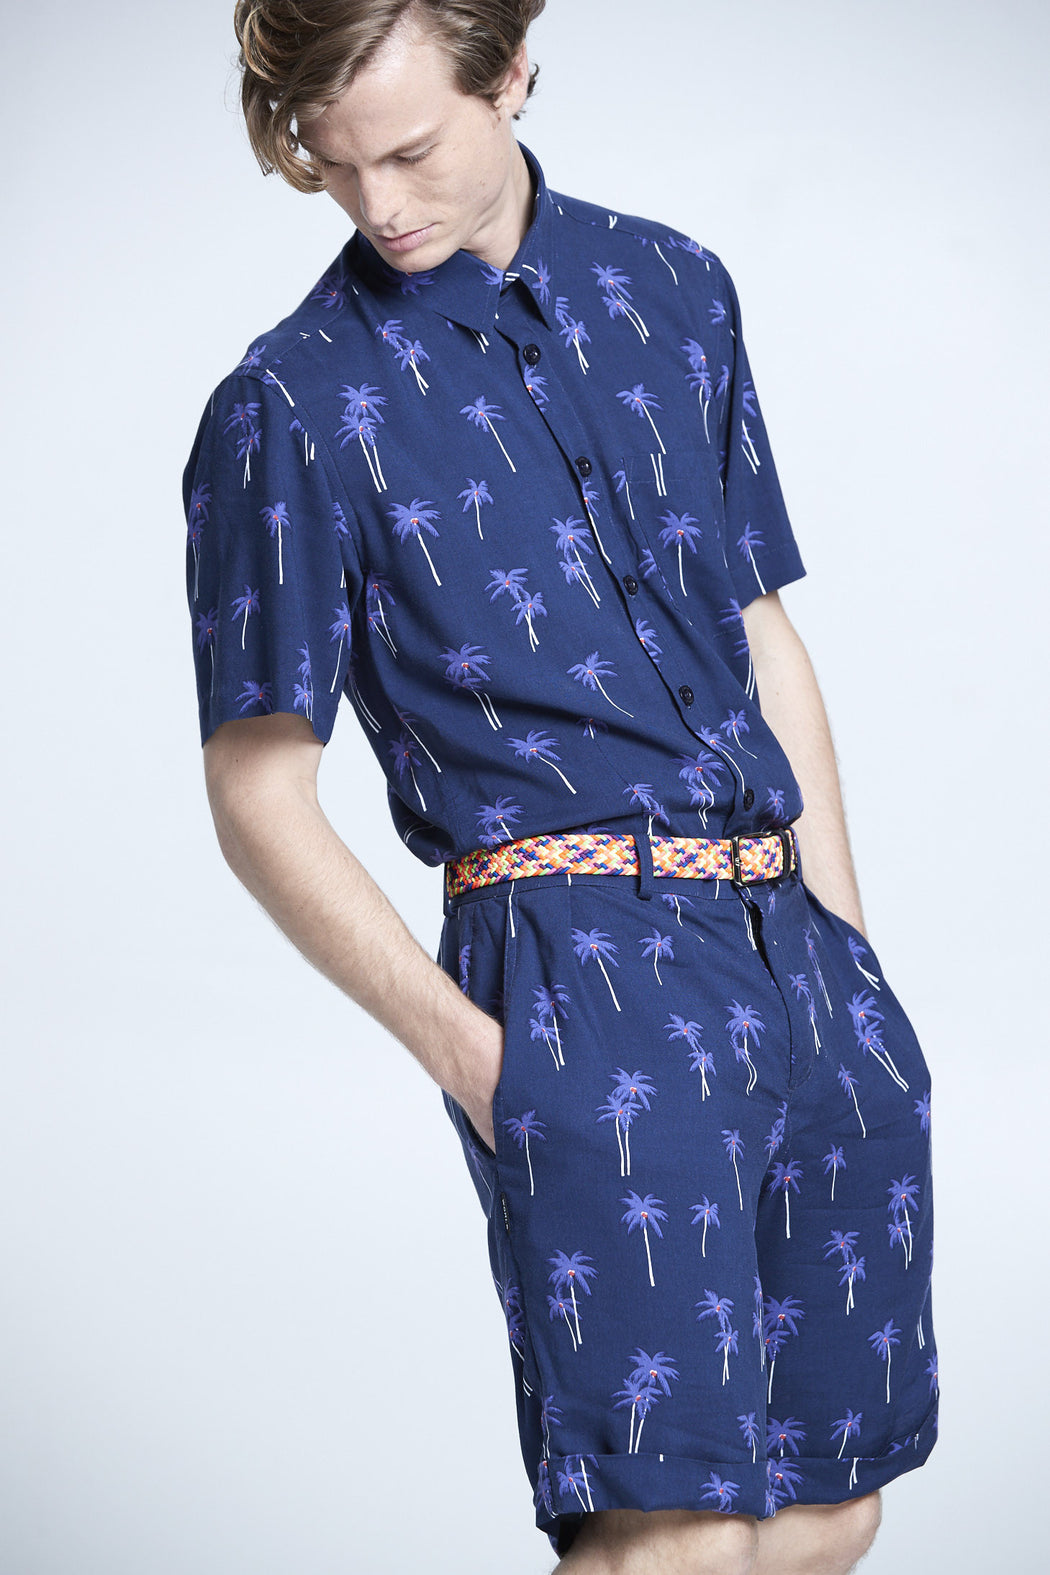 WORLDman 4201 Giuseppe Shirt Navy Palm